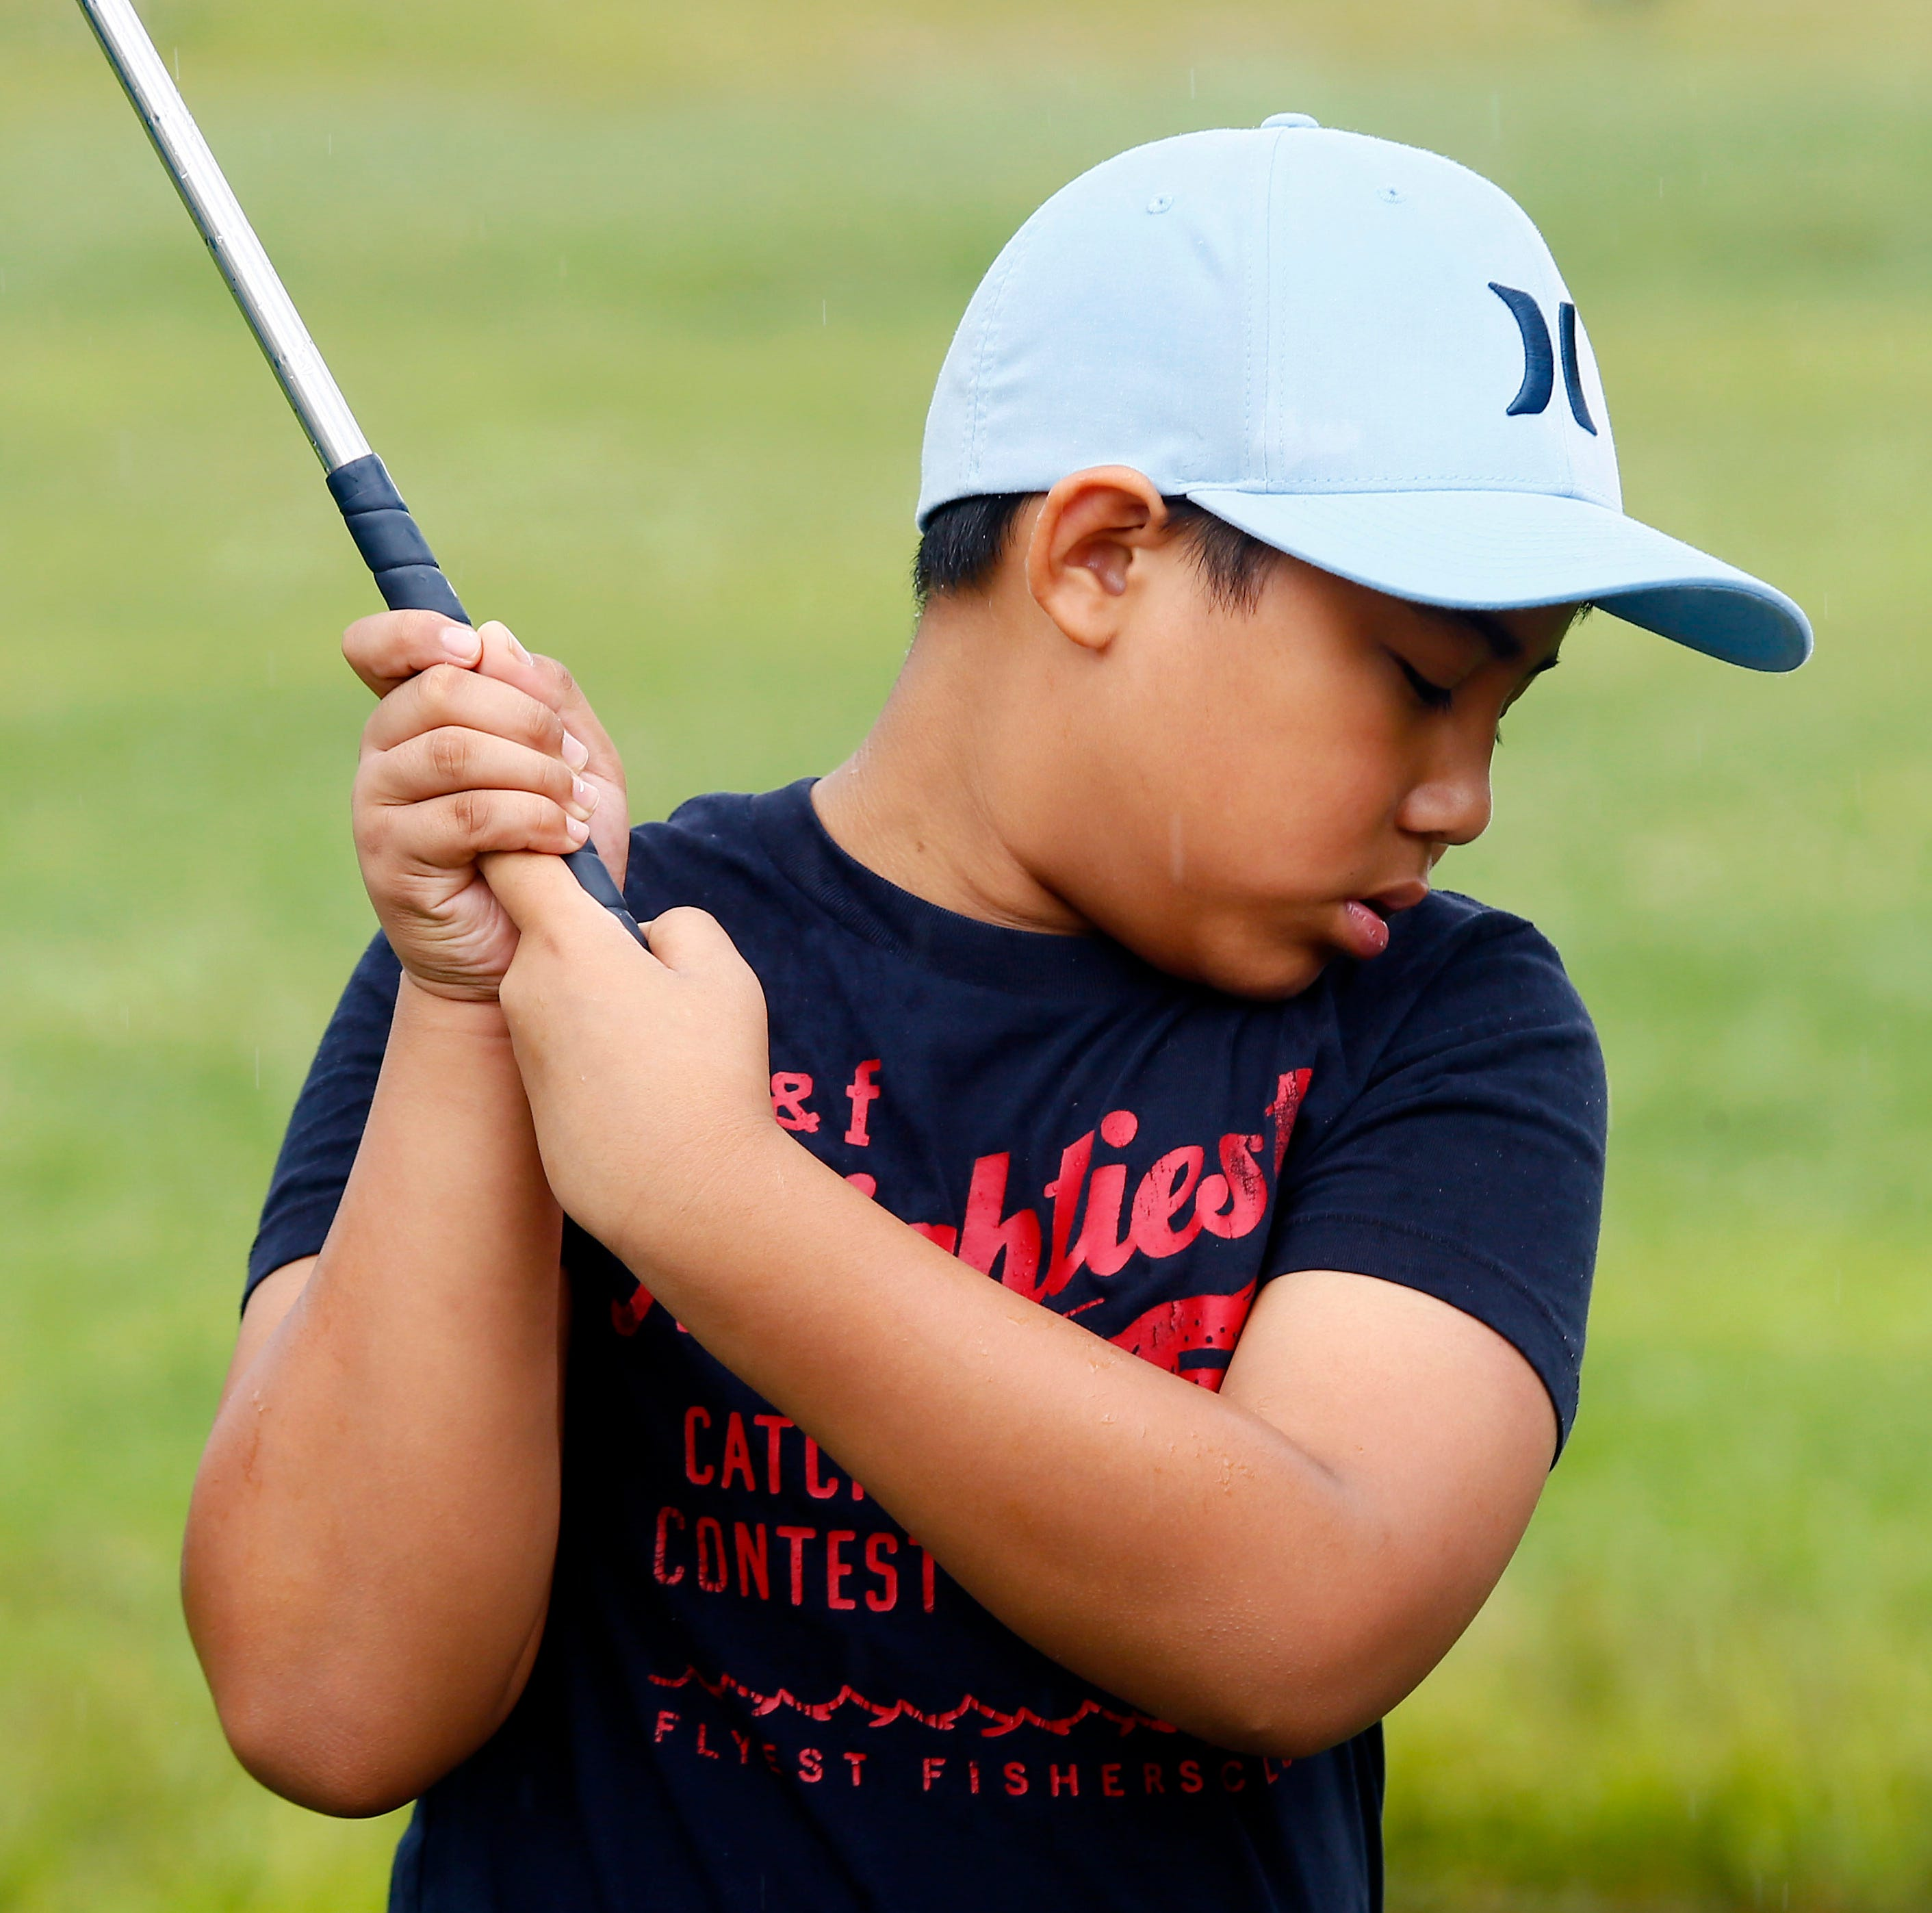 Rain can't dampen enthusiasm at Kids2Kids golf program